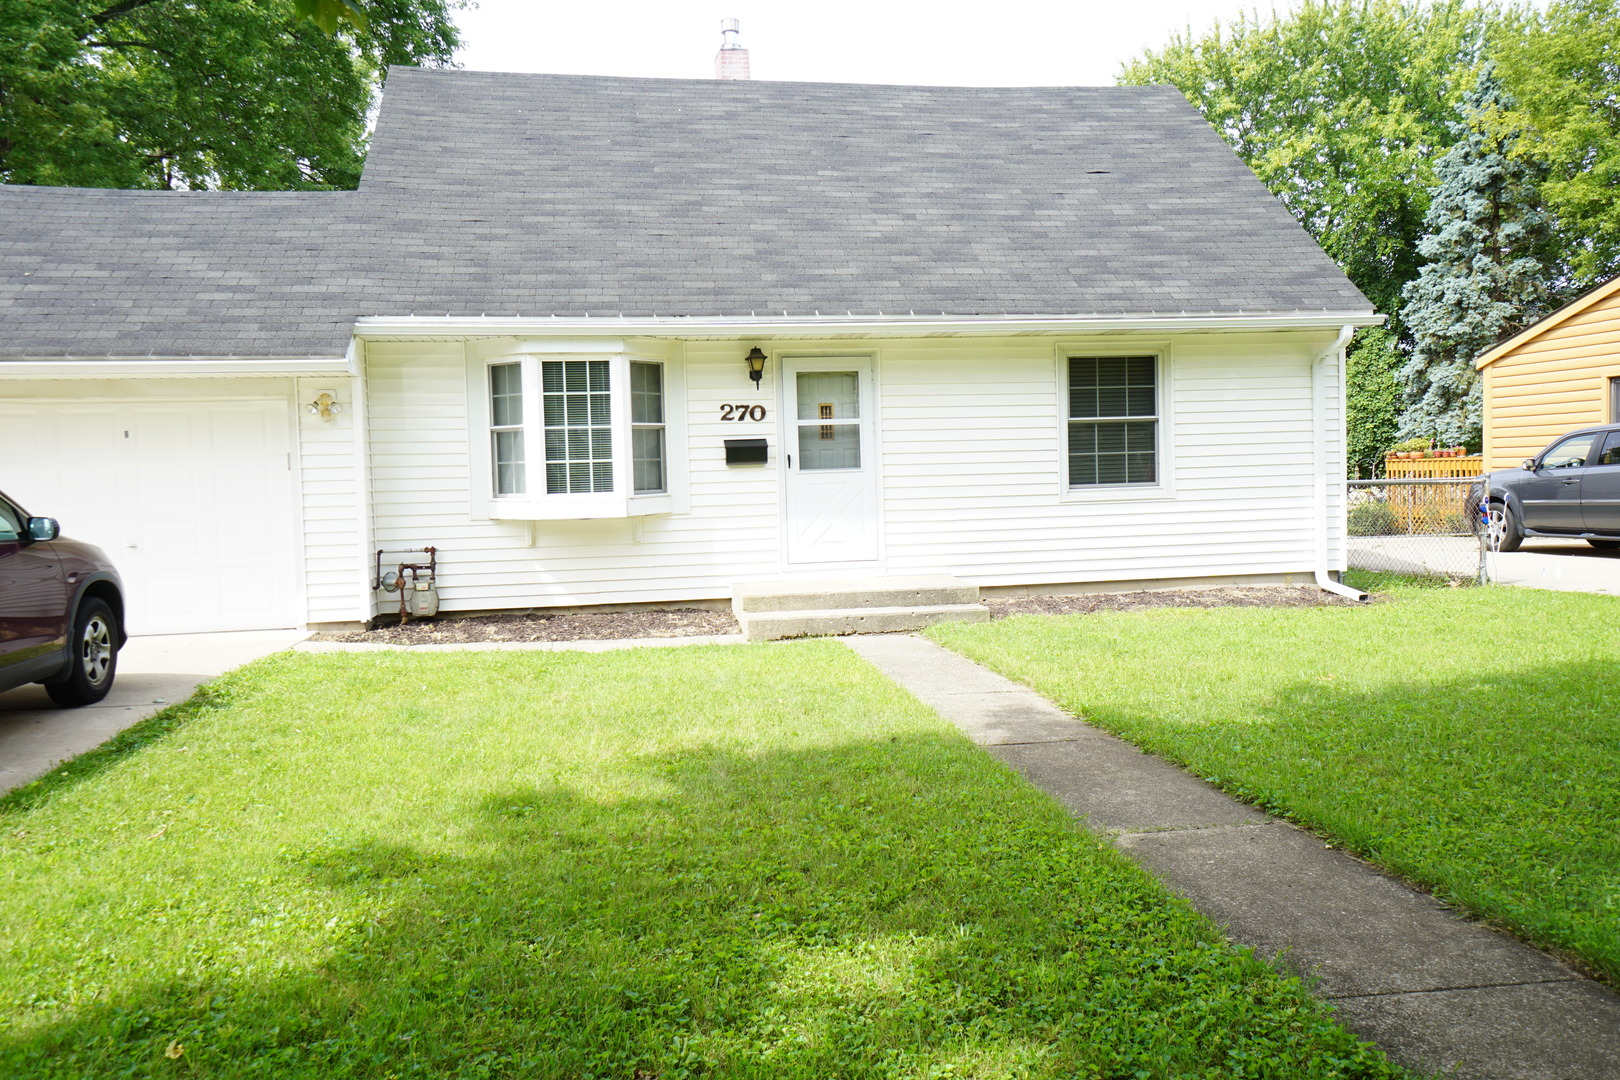 270 Hickory Drive, Crystal Lake in Mc Henry County, IL 60014 Home for Sale